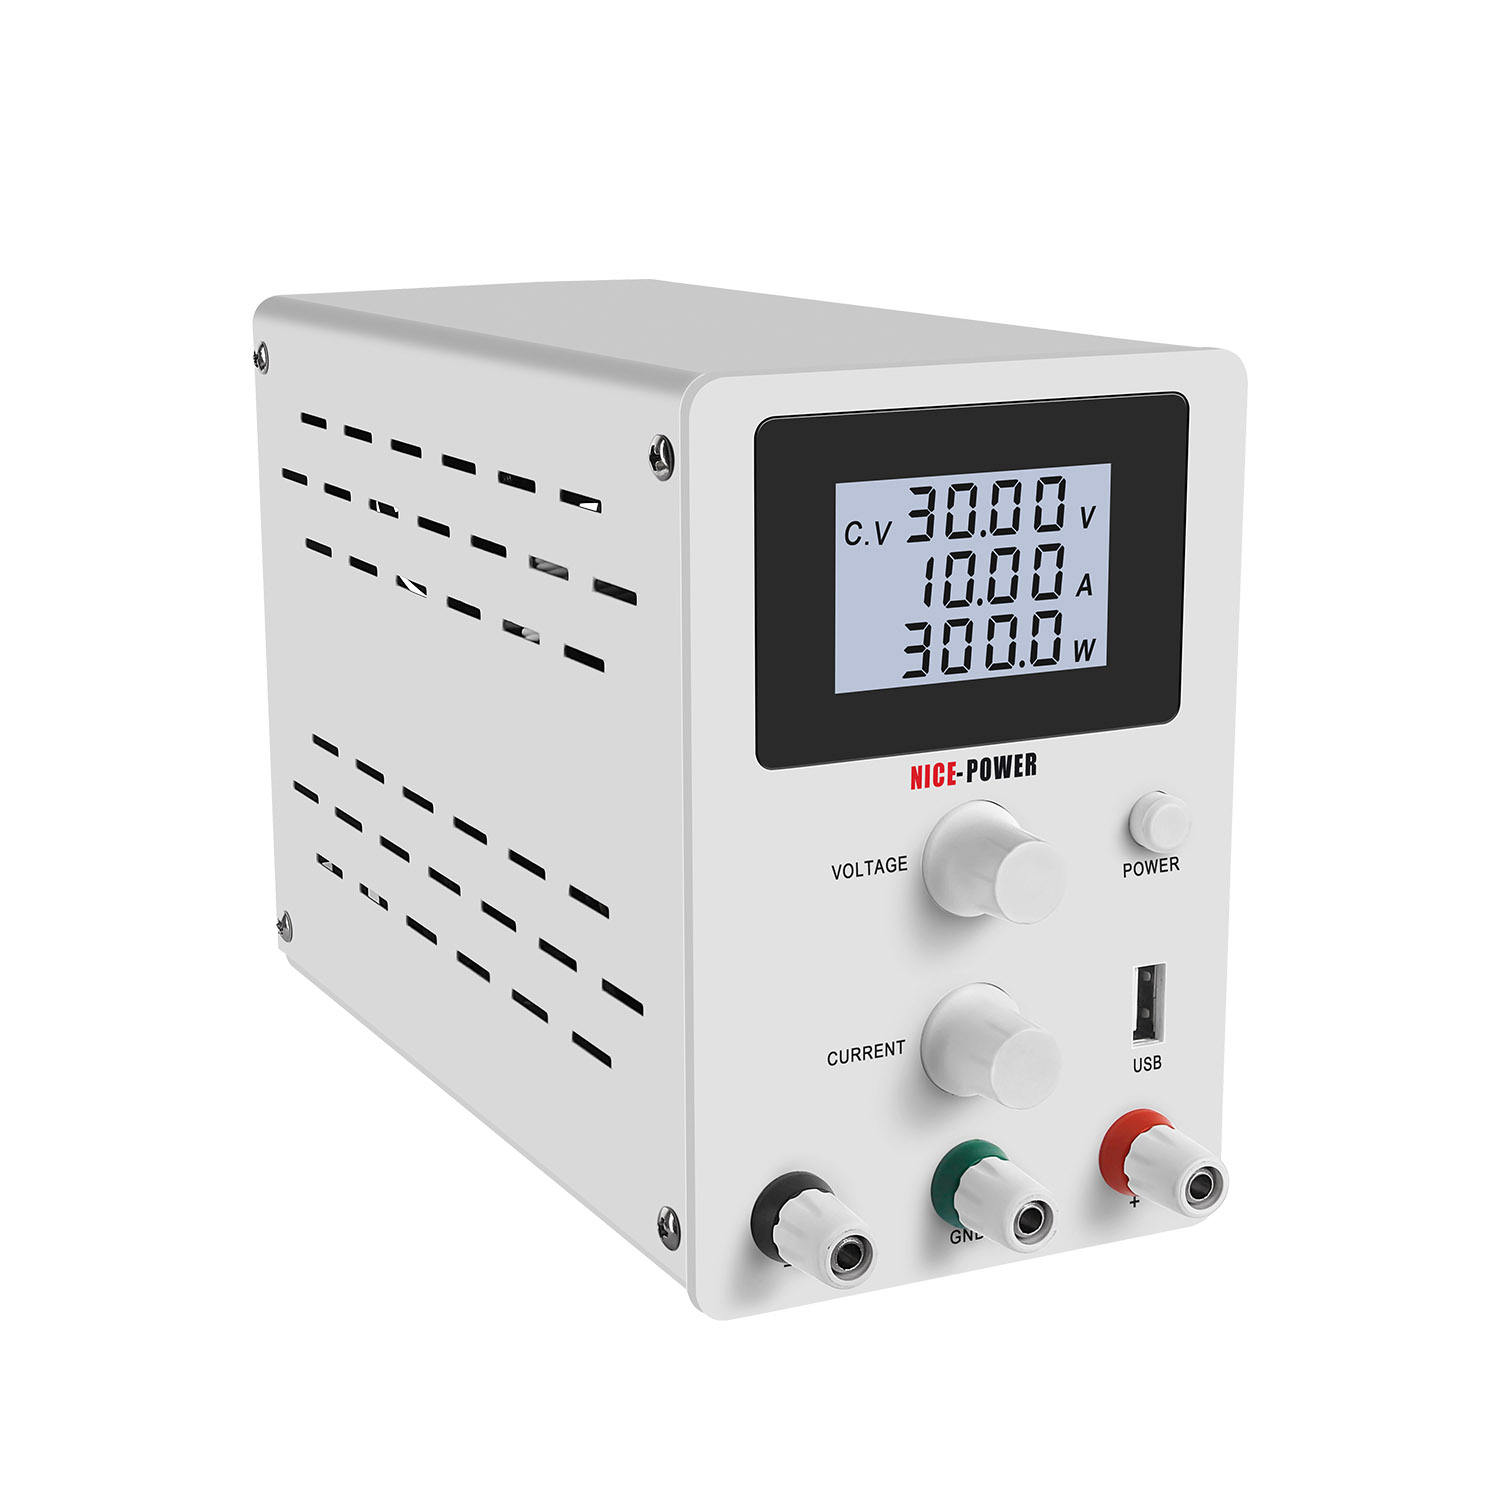 R-SPS3010D Factory Price DC Regulated Power Supply 30V 10A Digital Adjustable Switching Lab Test Repair Power Souce